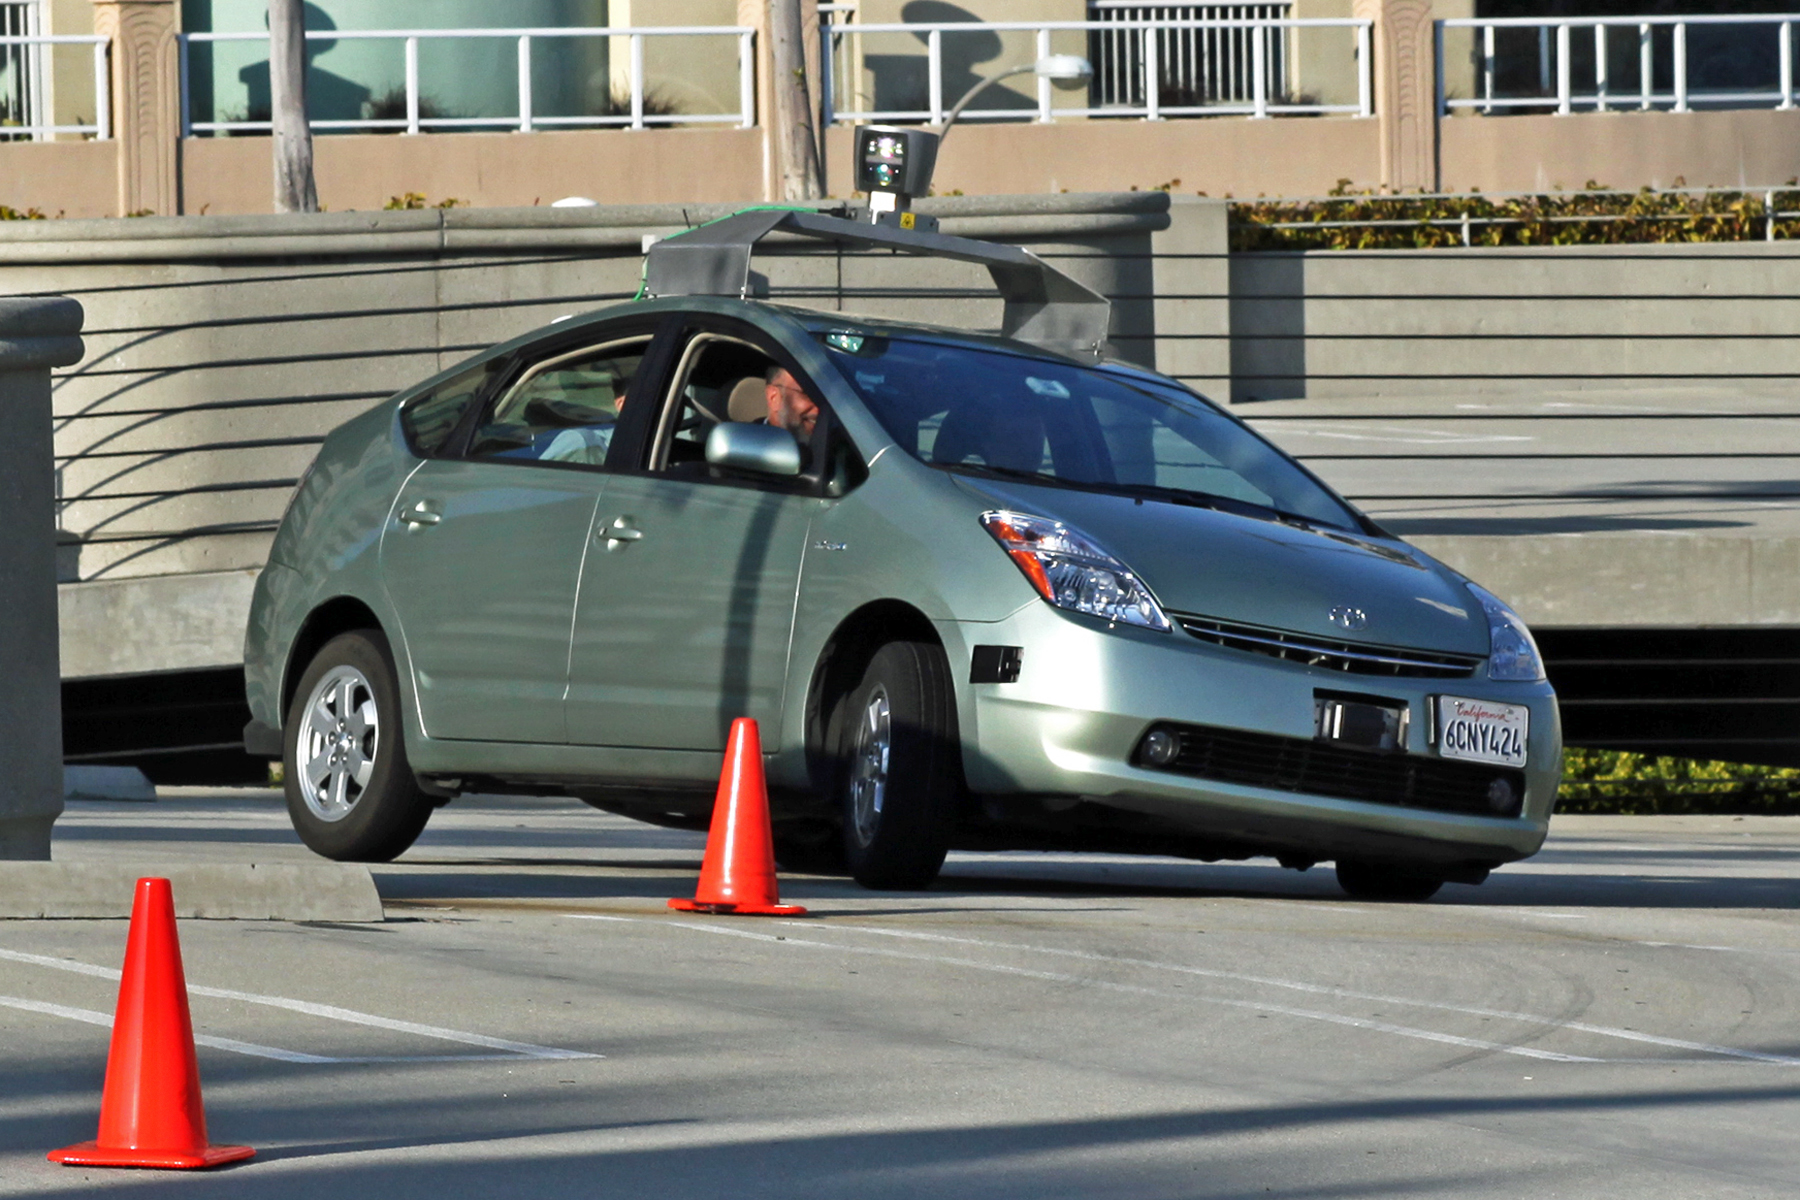 Google driverless car operating on a testing path